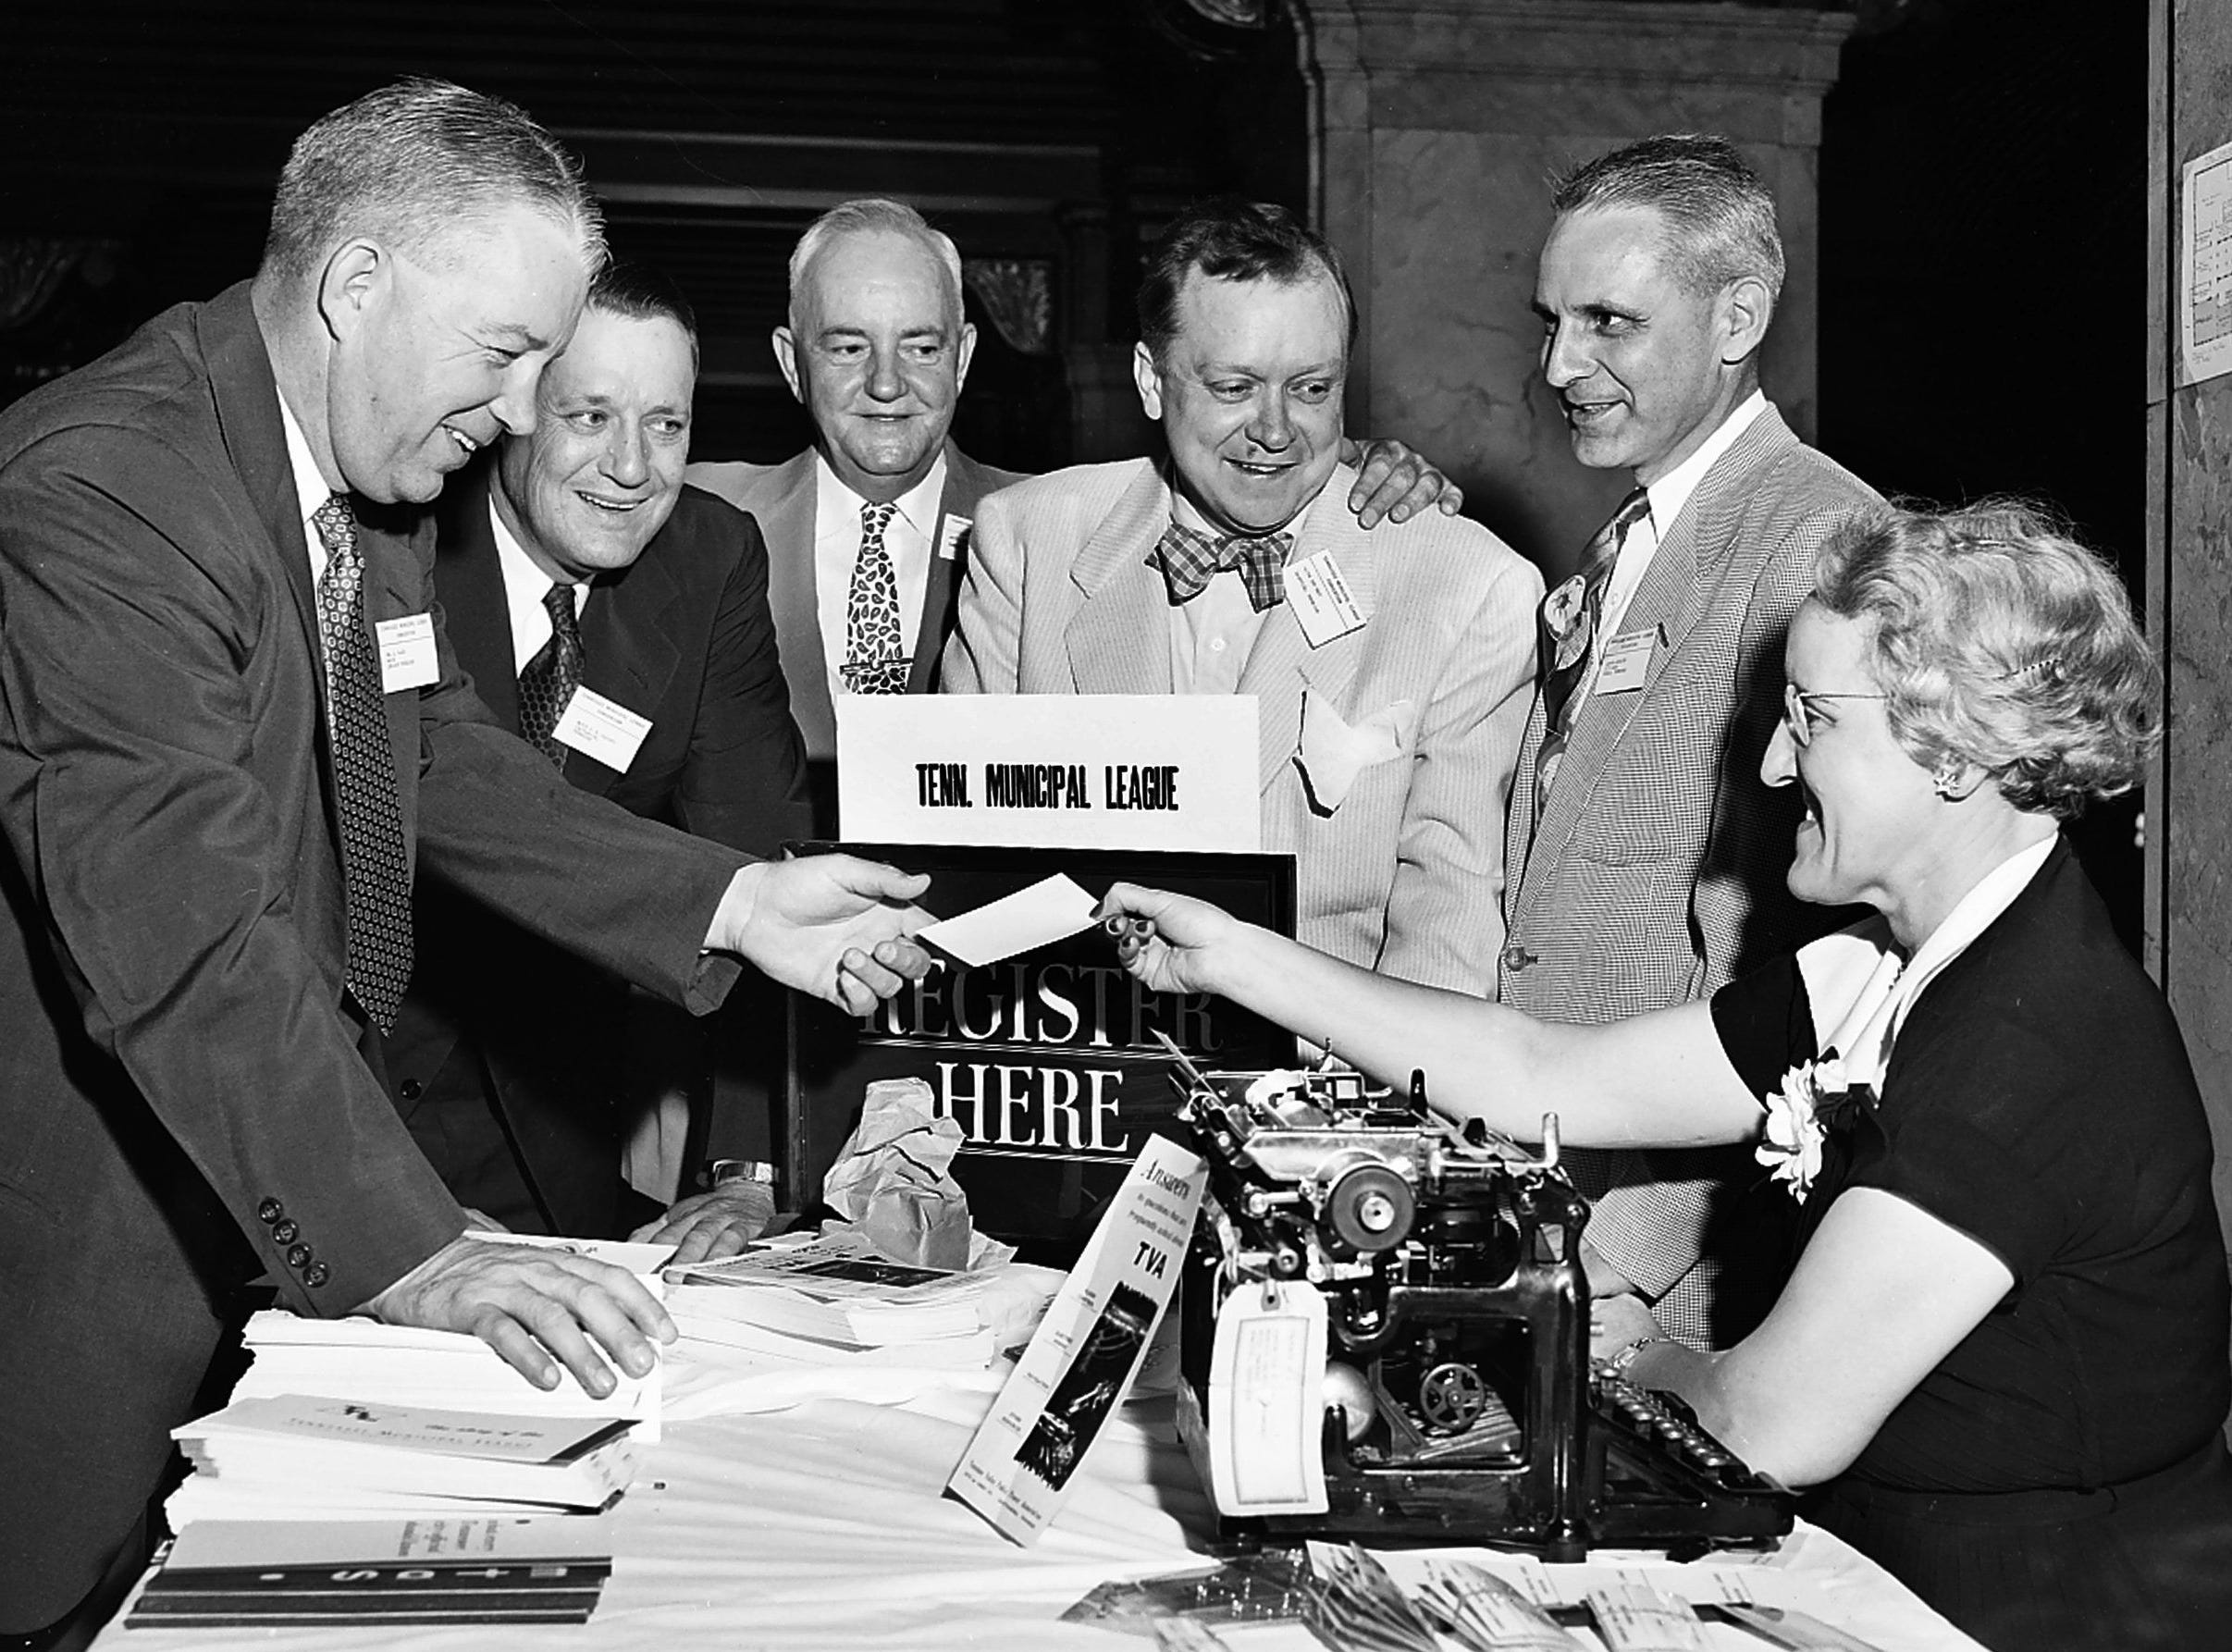 The reception desk at the Peabody was a busy place on 7 Jun 1953 as top officials from all over the state registered for the annual Tennessee Municipal League meeting. Mayor Frank Tobey, third left, of Memphis was host. Others are, from left, Mayor W.D. Baird of Lebanon, TML president; Mayor P.R. Olgiati of Chattanooga; Mayor Ben West of Nashville; Armond Arnurius of Norris, city recorder; and Mrs. Joe Dixon of Nashville, TML secretary.